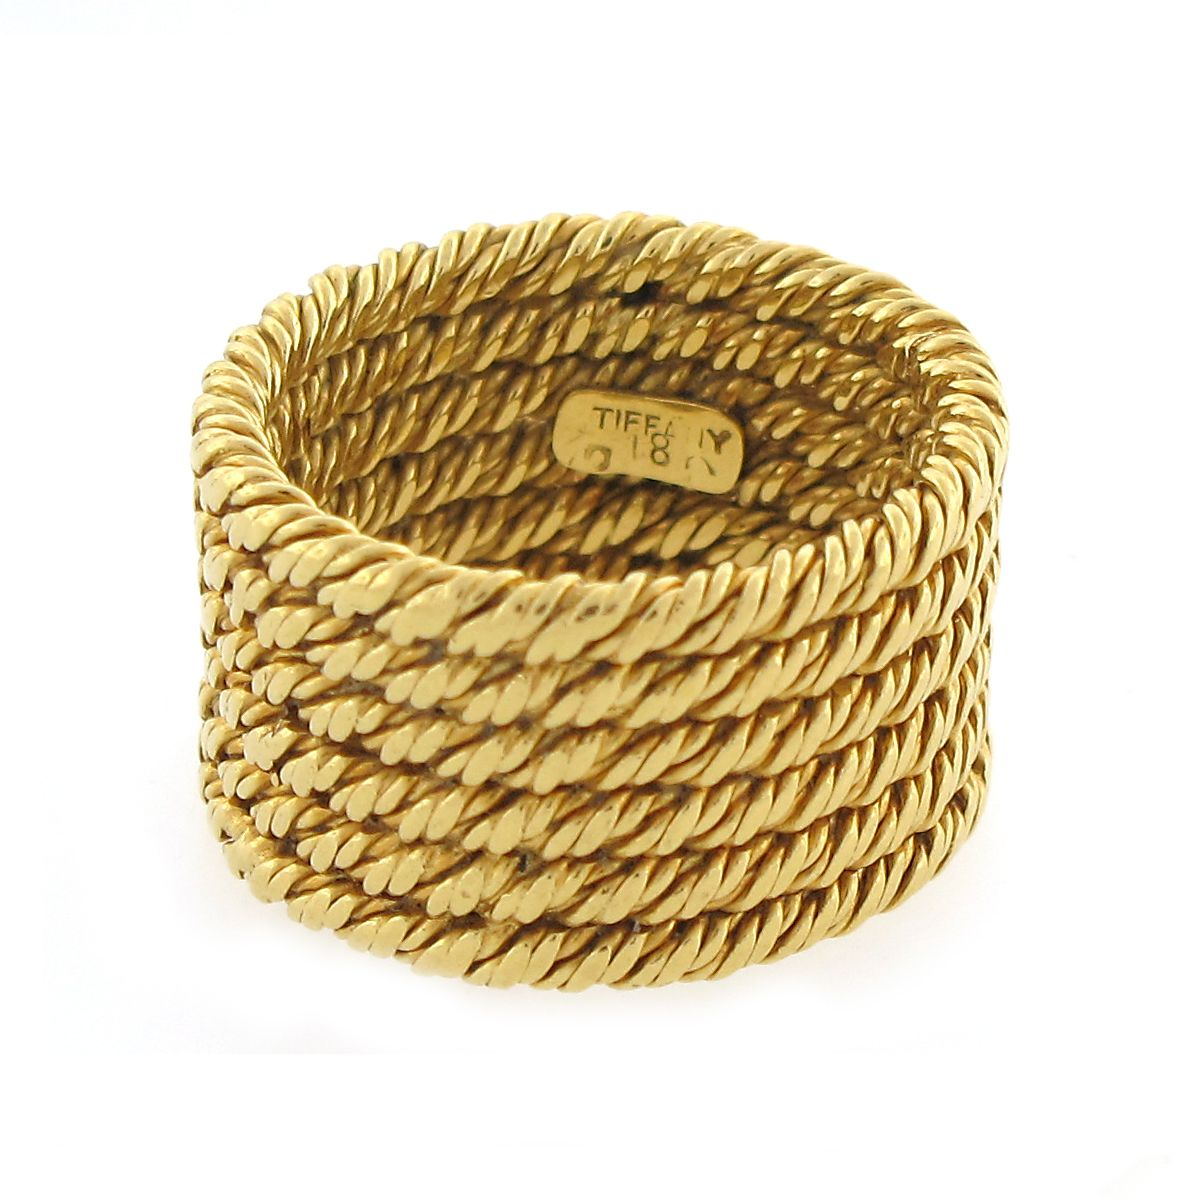 tiffany wedding bands Nontraditional wedding band Vintage Tiffany Co Rope Band Ring in 18K Gold